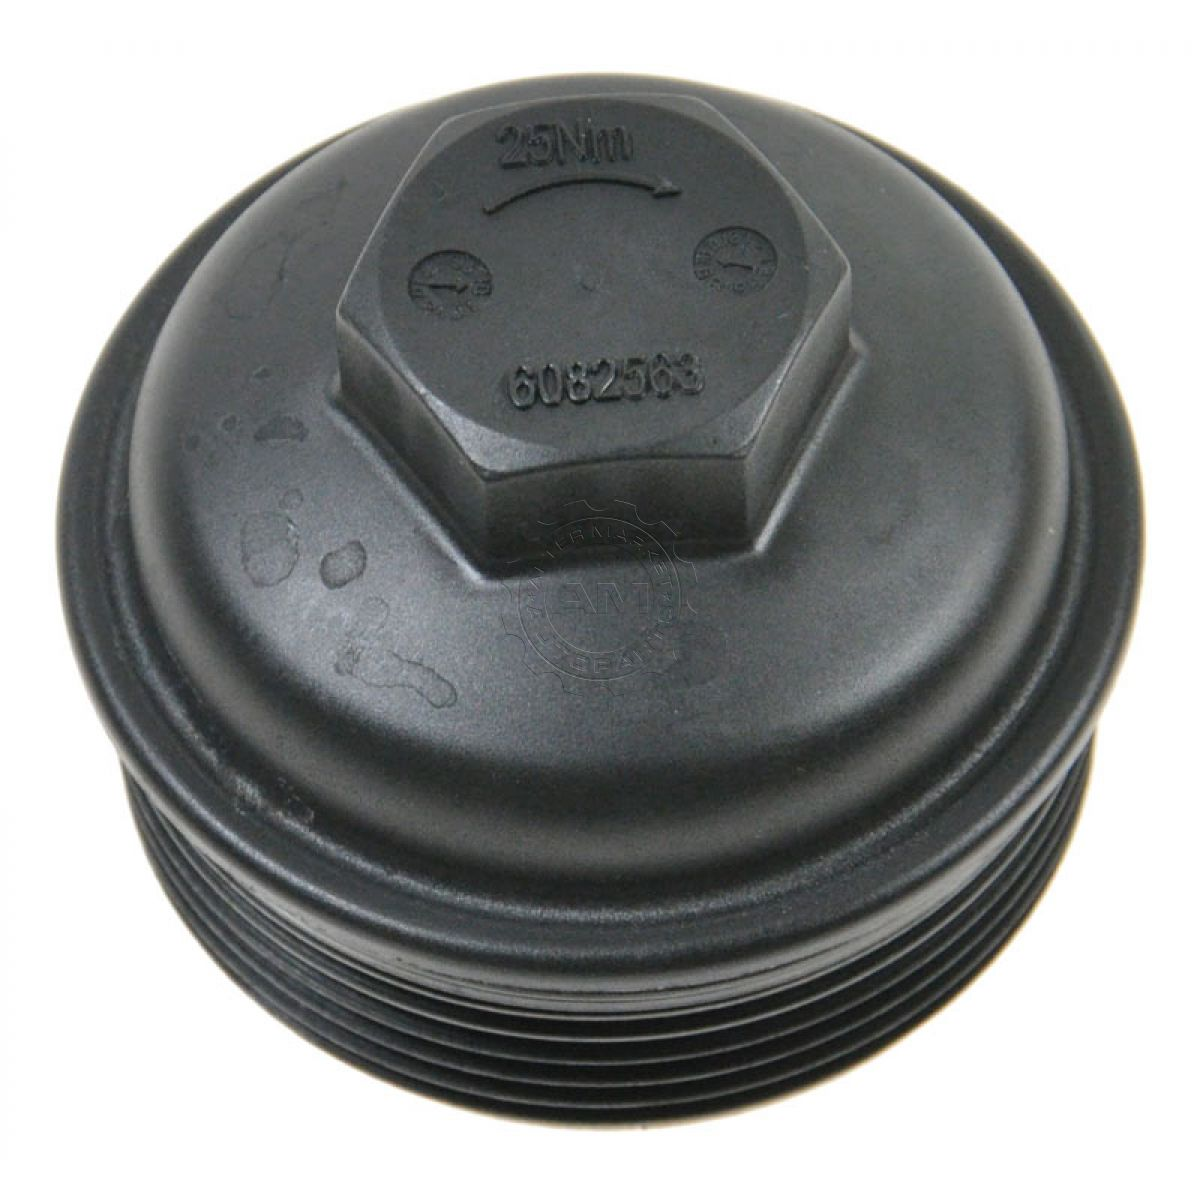 Dorman Oil Filter Housing Cap Cover For Cobalt Vue Grand Am Olds Alero 19495121466